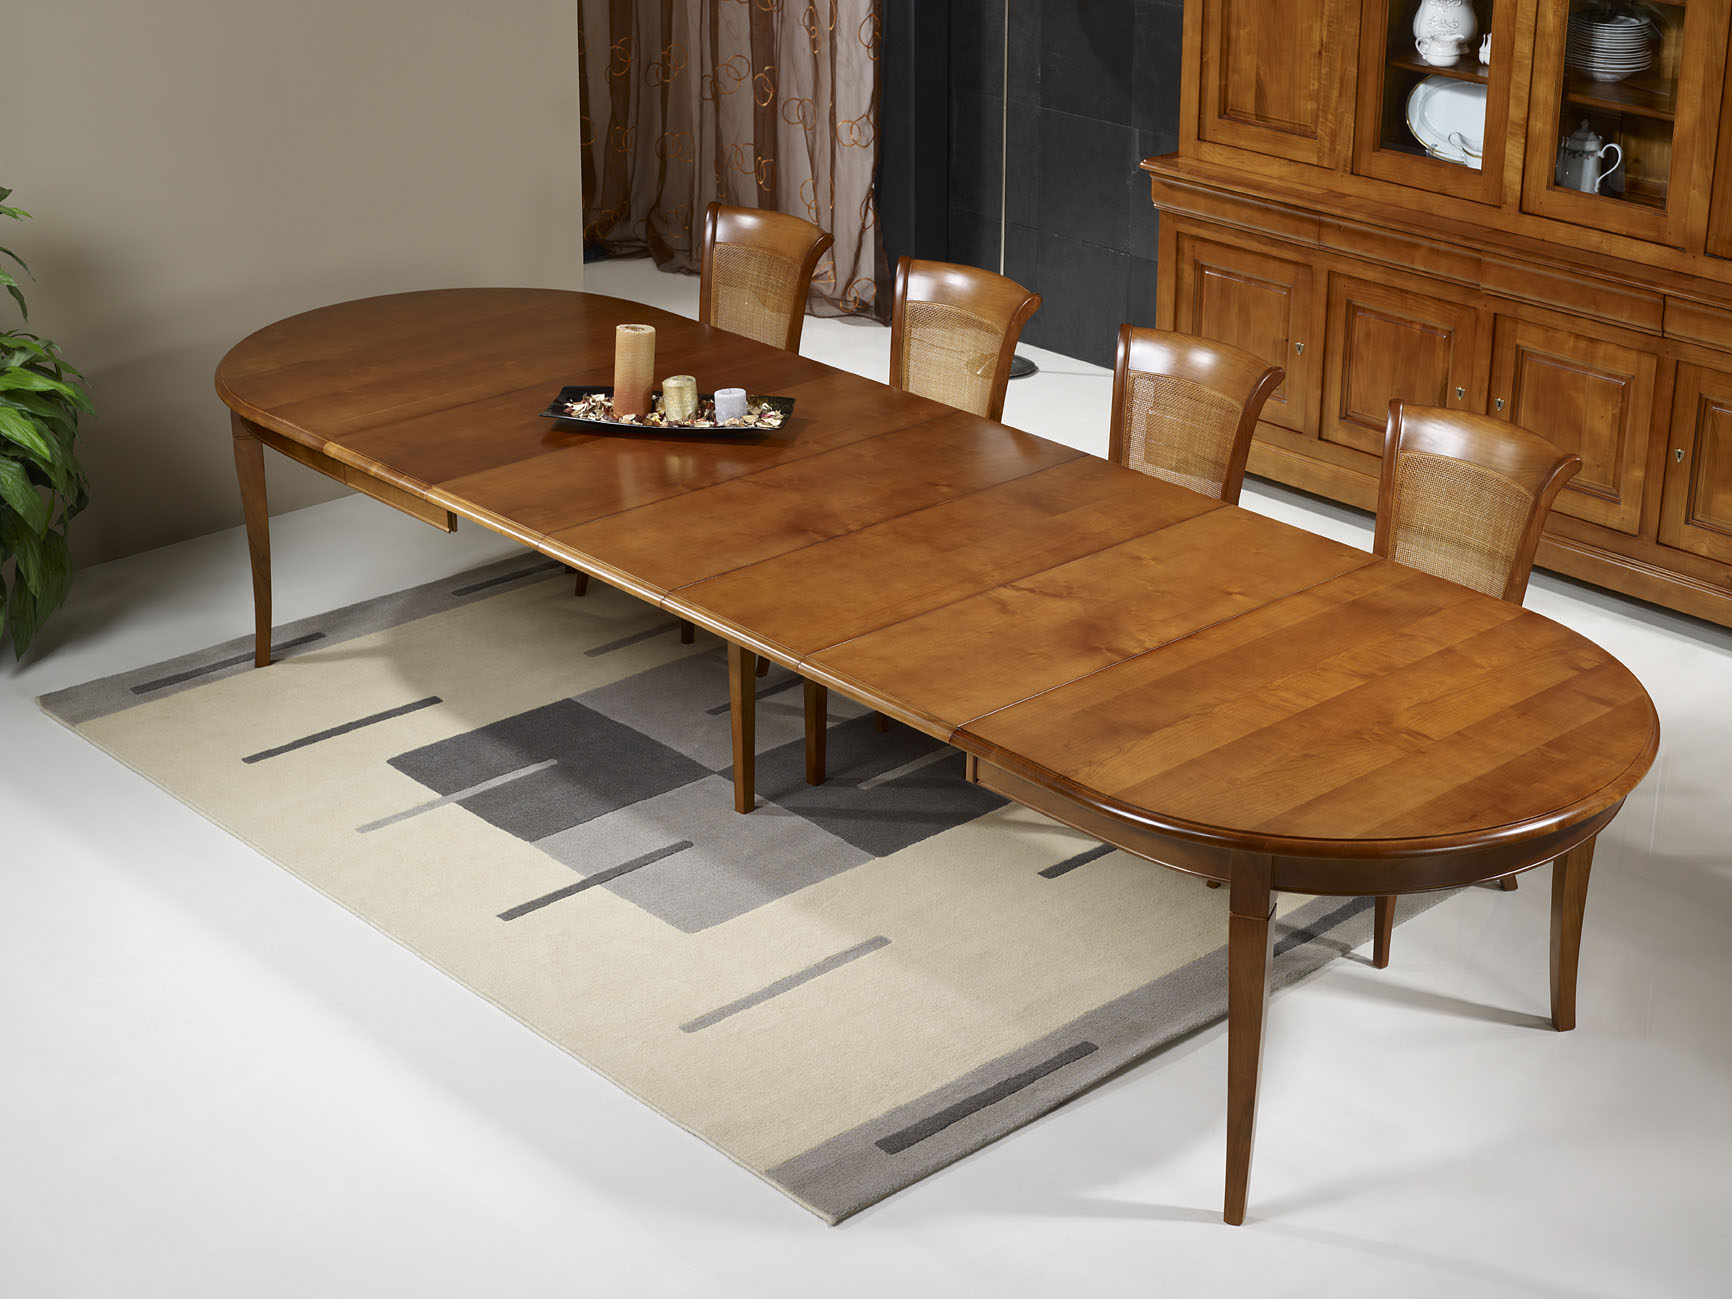 Table ovale julie 180x120 en merisier massif de style for Table rallonge